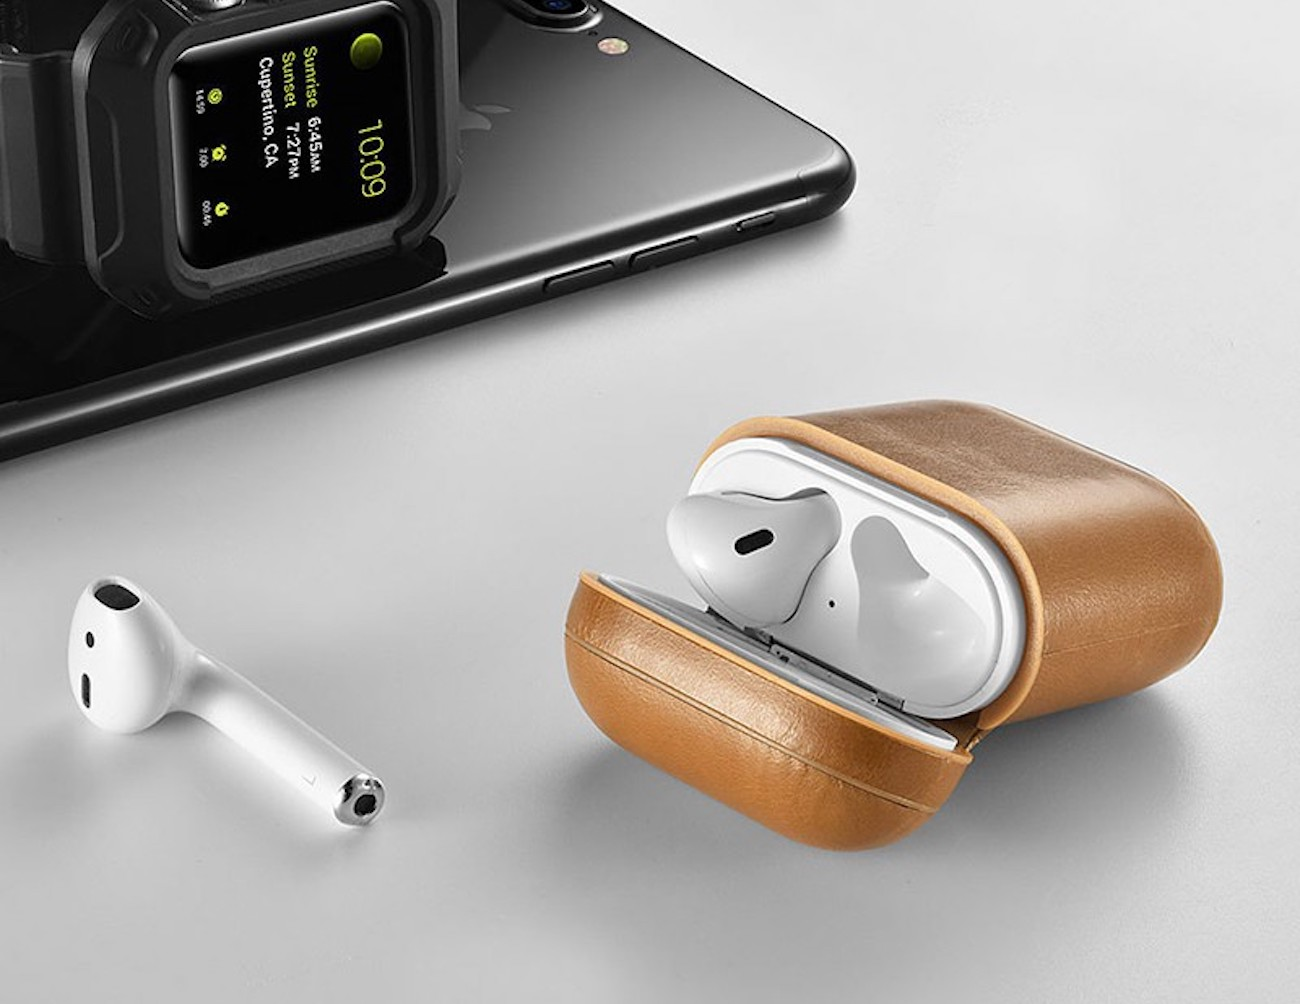 Leather AirPods Case lets you wirelessly charge